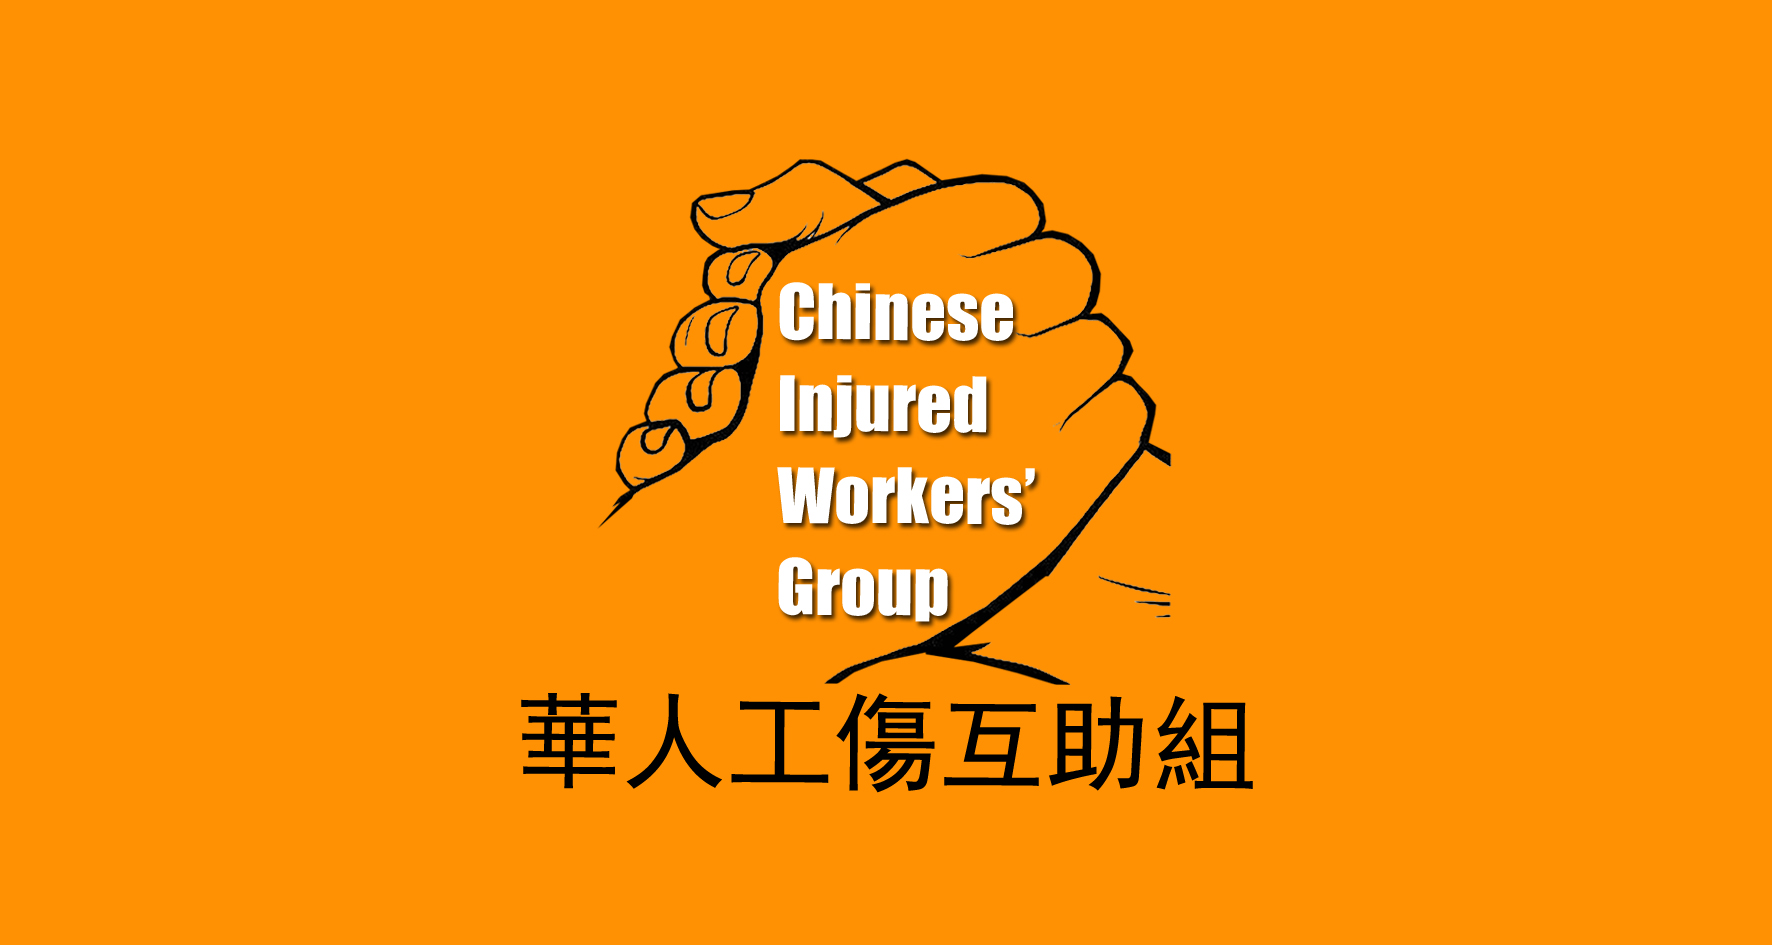 Chinese Injured Workers Group logo